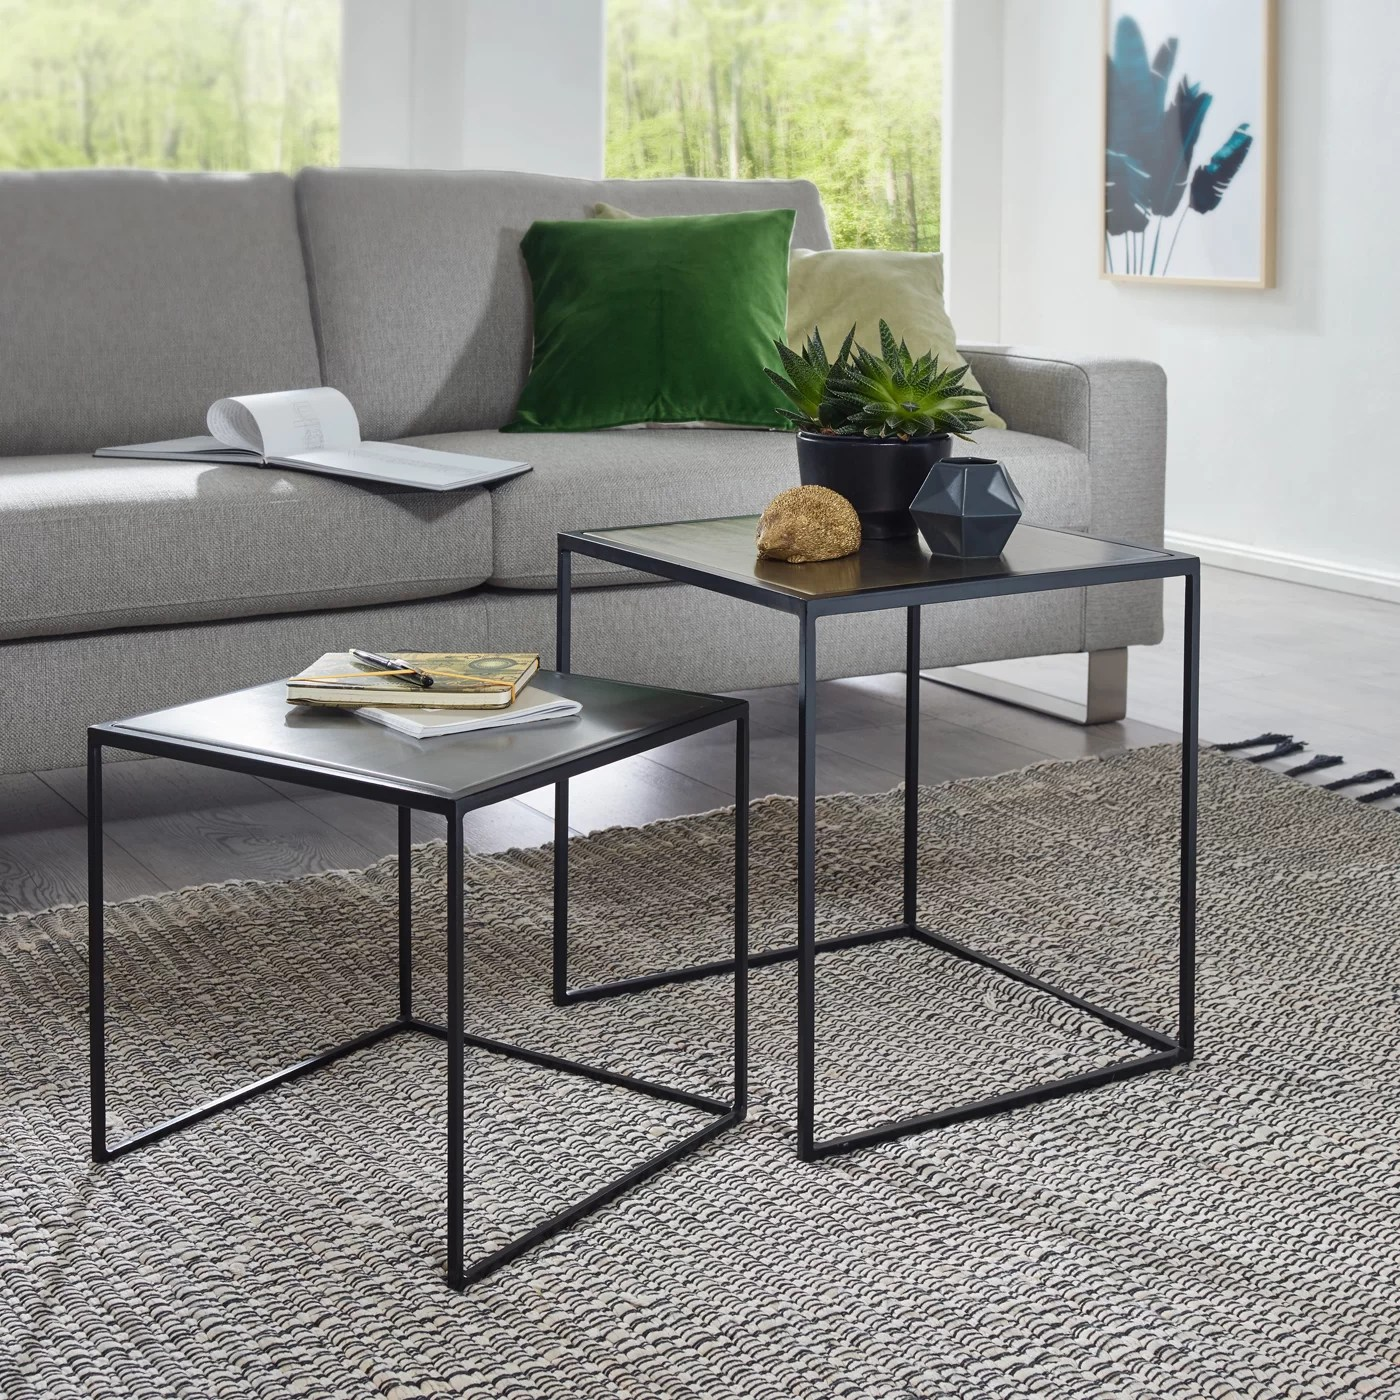 Glastisch Tempered Lightle 2 Piece Nest Of Tables